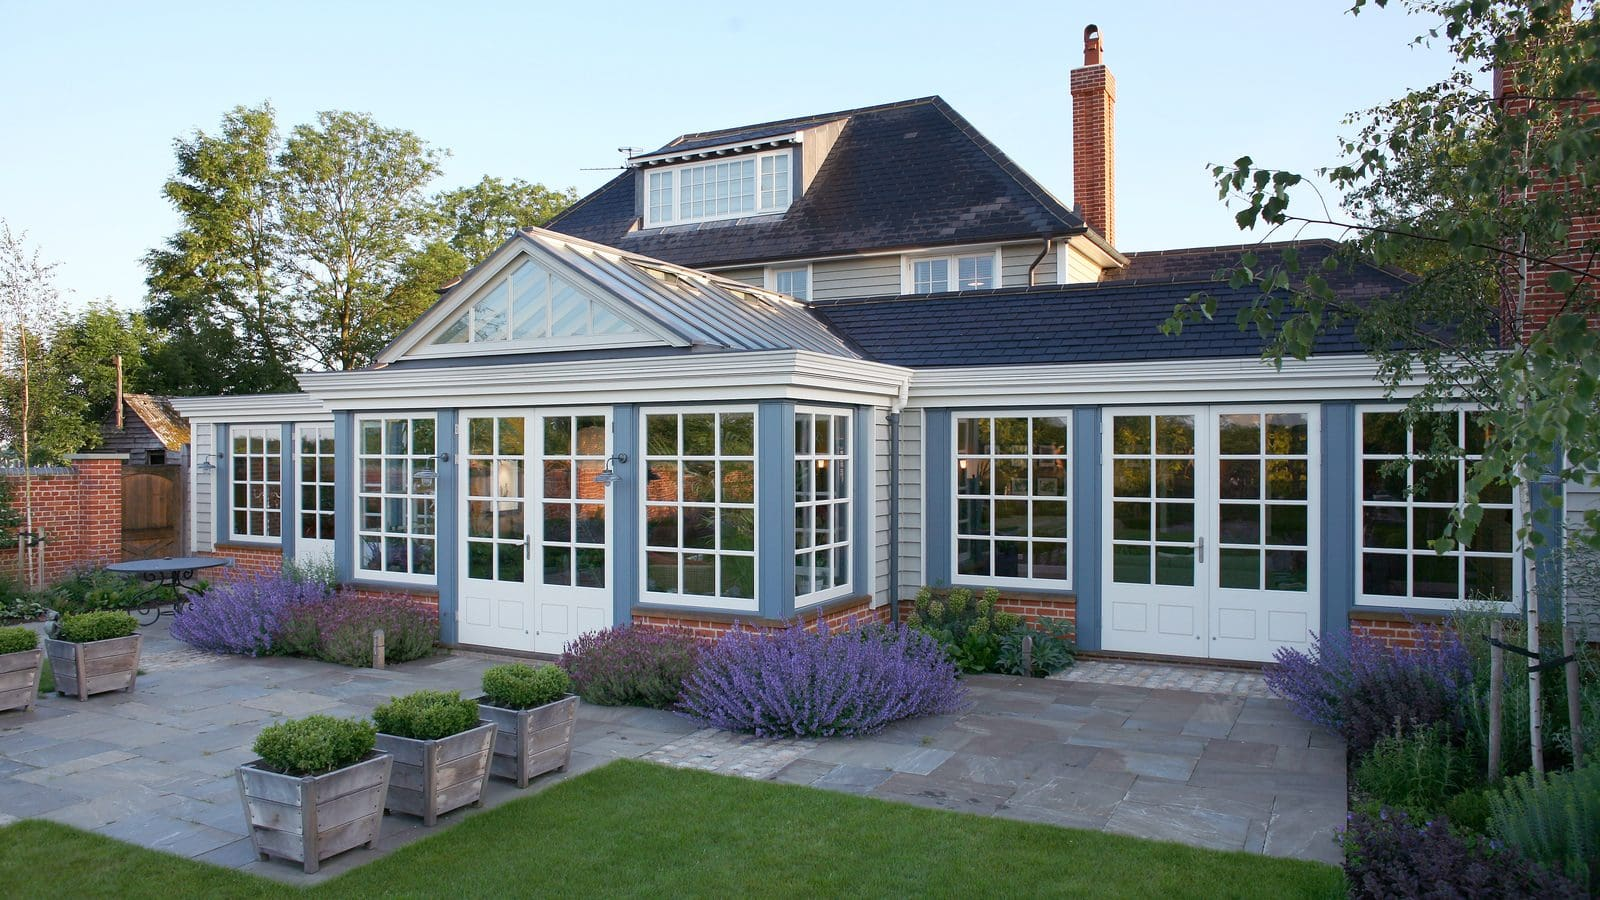 What can a garden room bring to a self-build home?